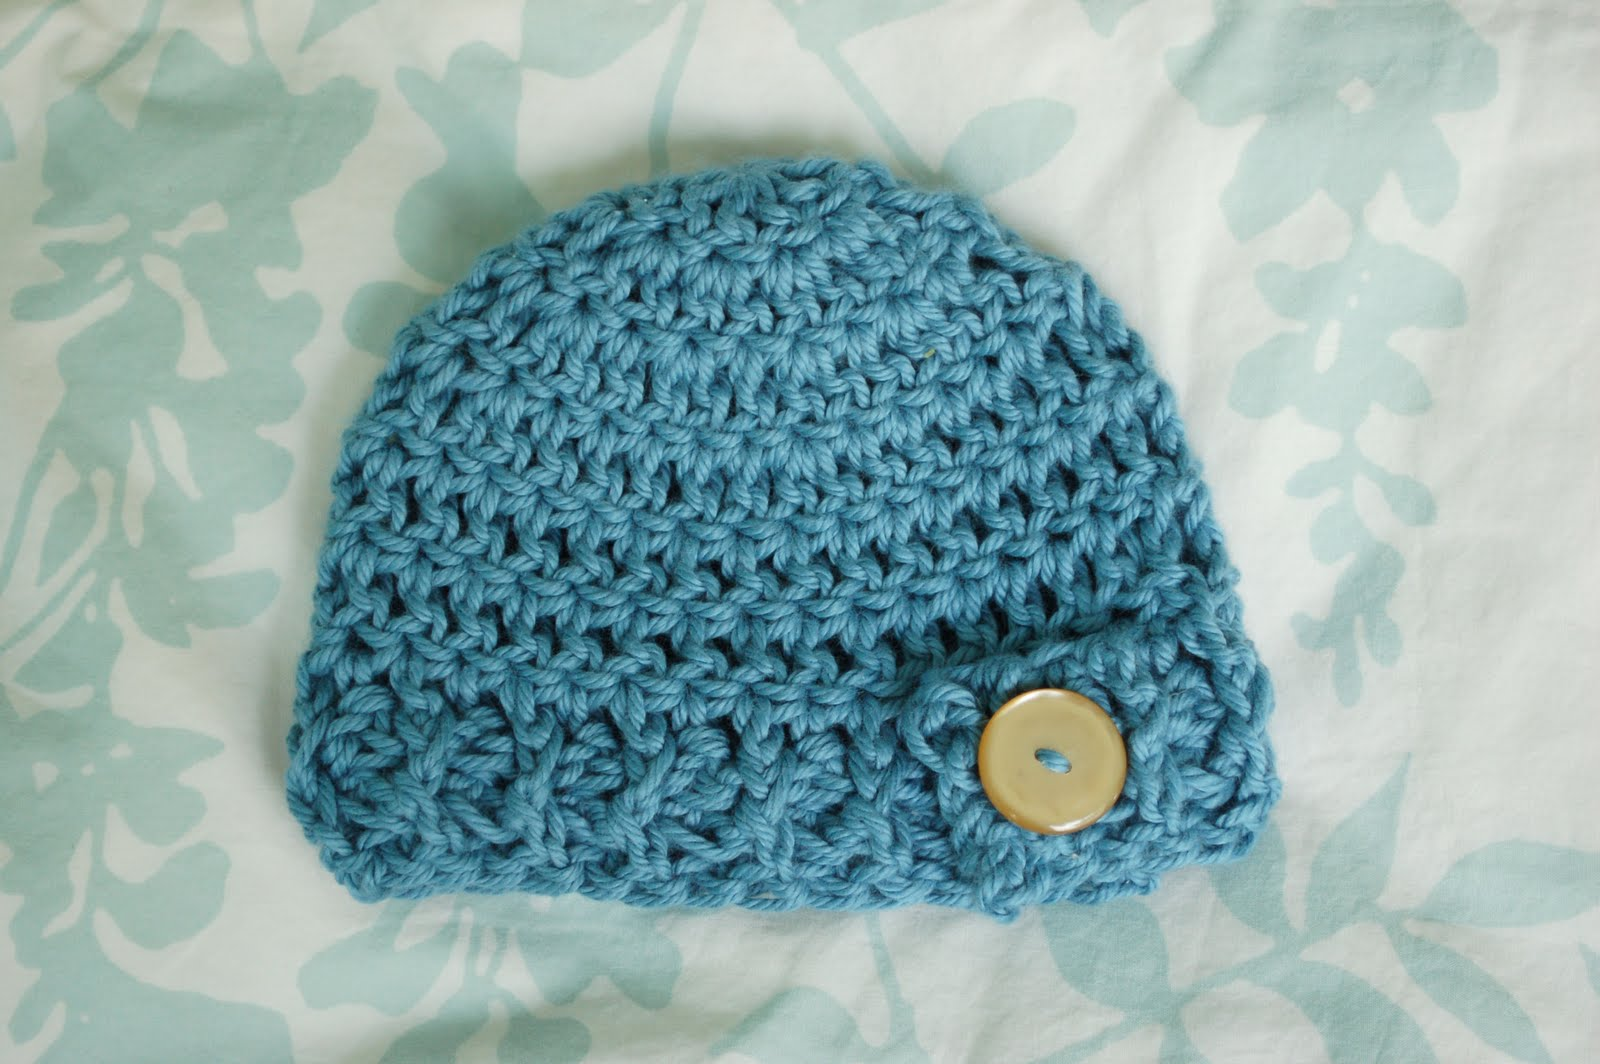 Free Patterns Crochet Beanies : Alli Crafts: Free Pattern: Button Flap Beanie - Newborn